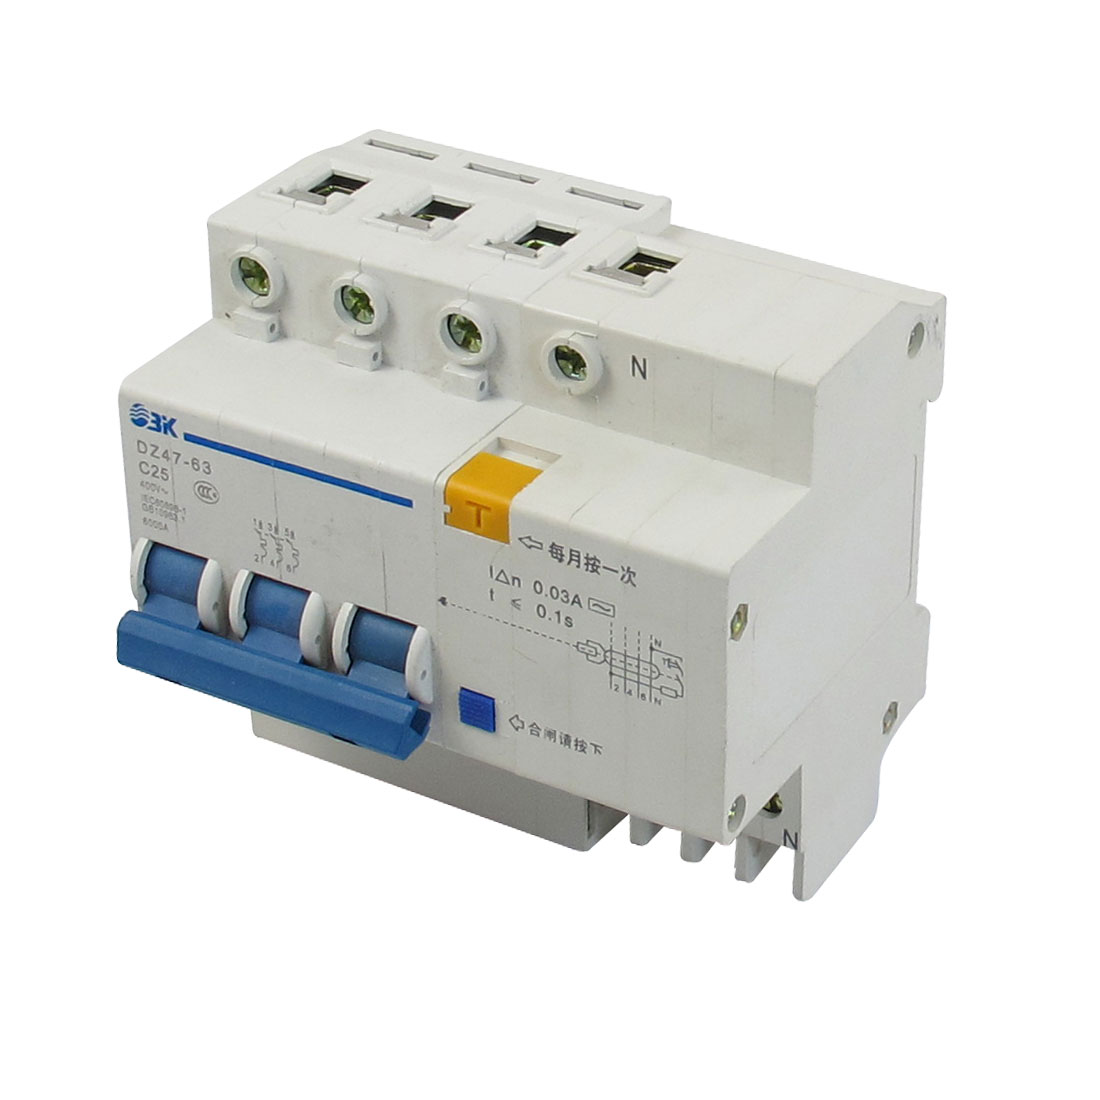 6000A Breaking Capacity DIN Rail 3P+N Earth Leakage Circuit Breaker AC 400V 25A